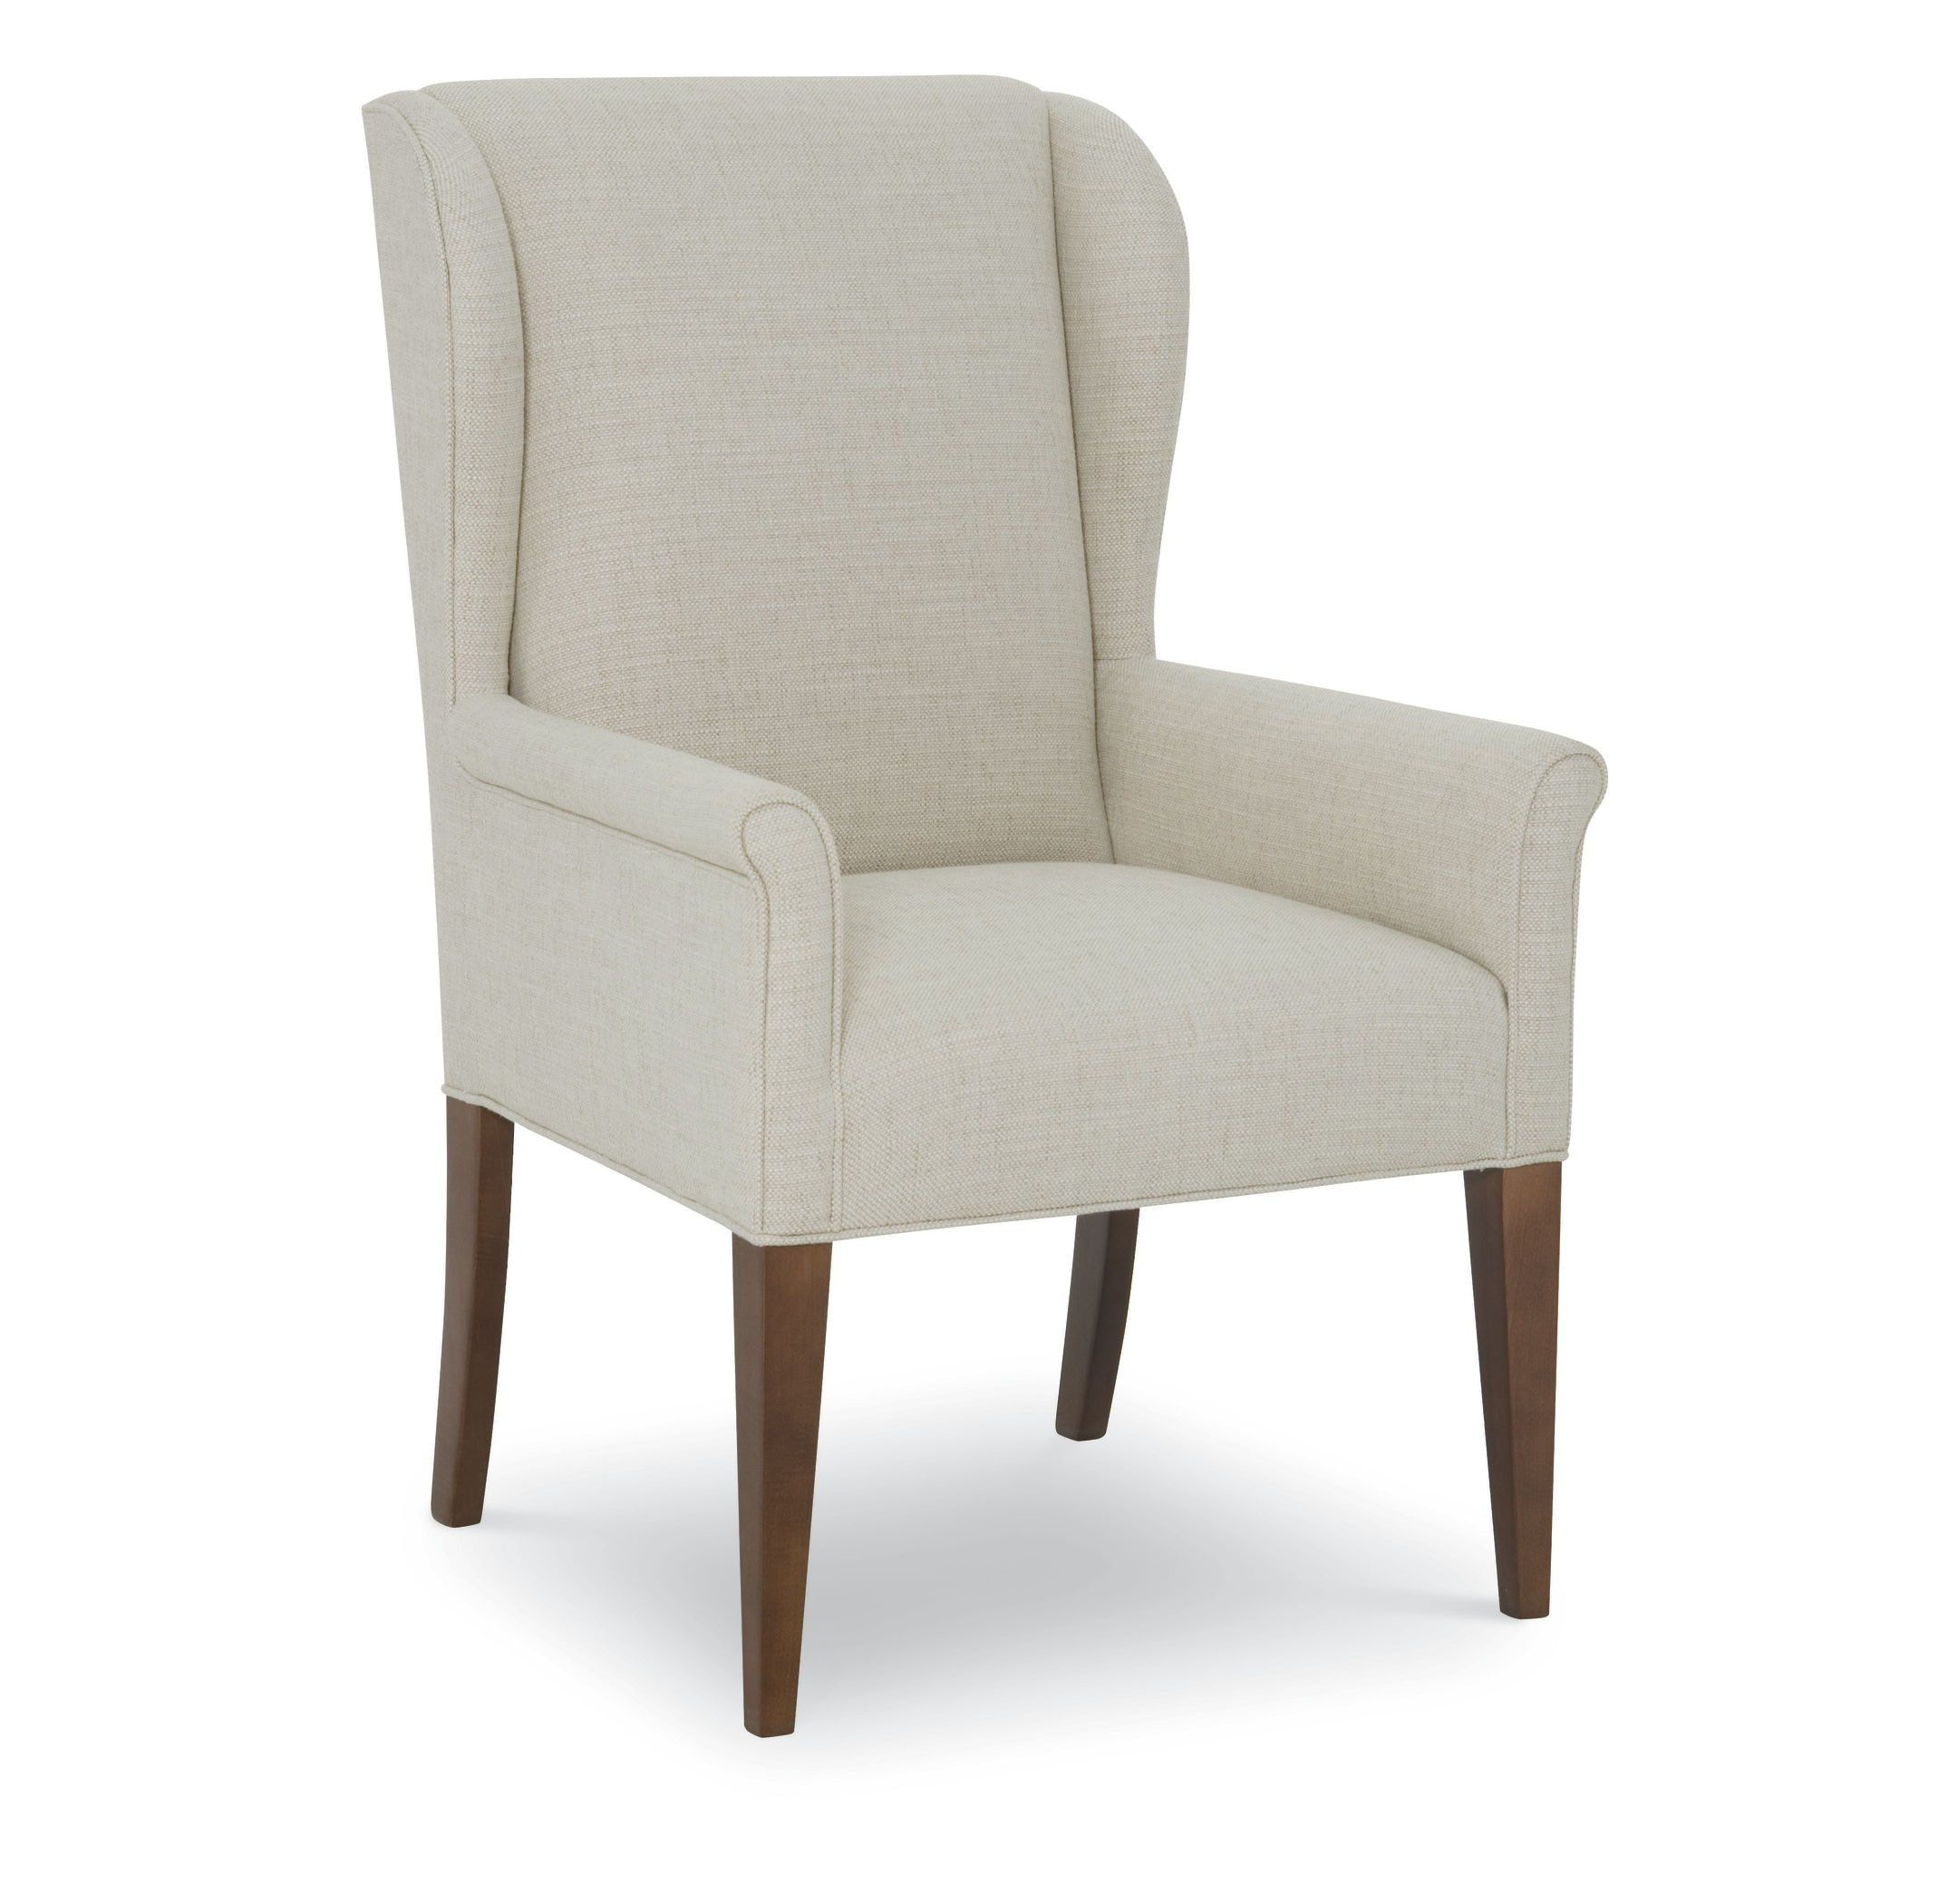 CR Laine Dining Room Savoy Dining Arm Chair